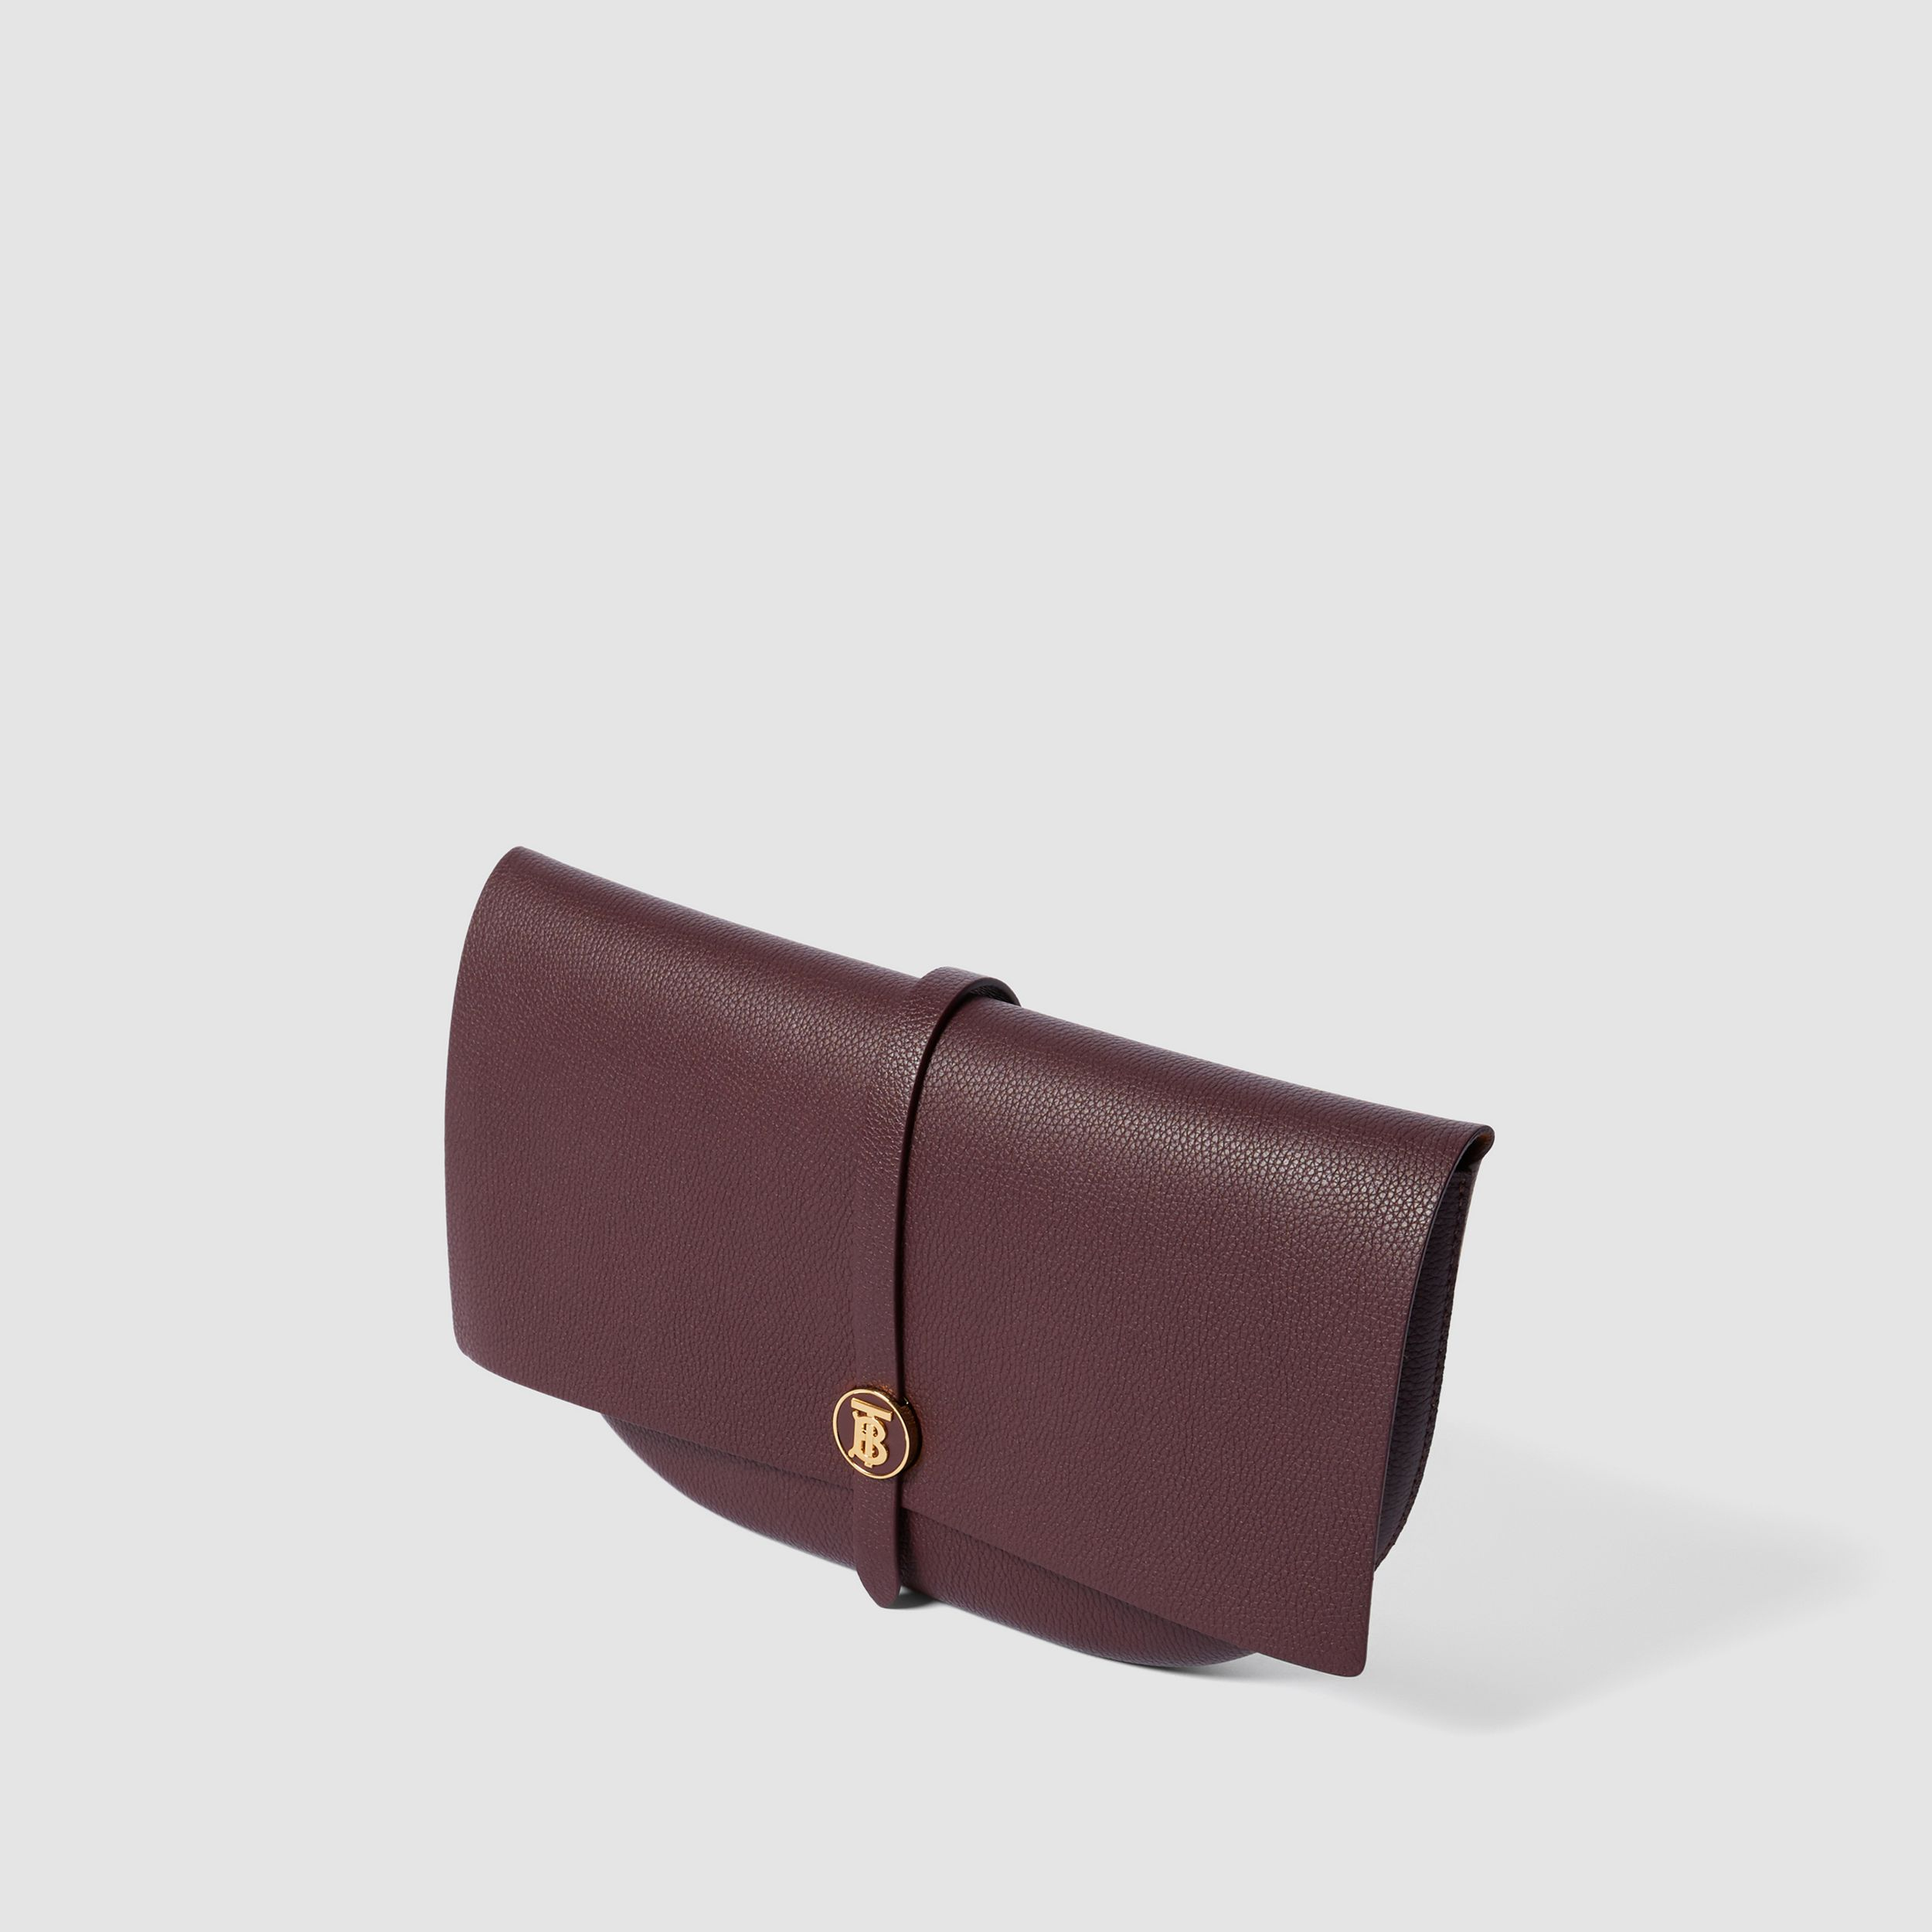 Grainy Leather Anne Clutch in Dark Walnut - Women | Burberry - 4